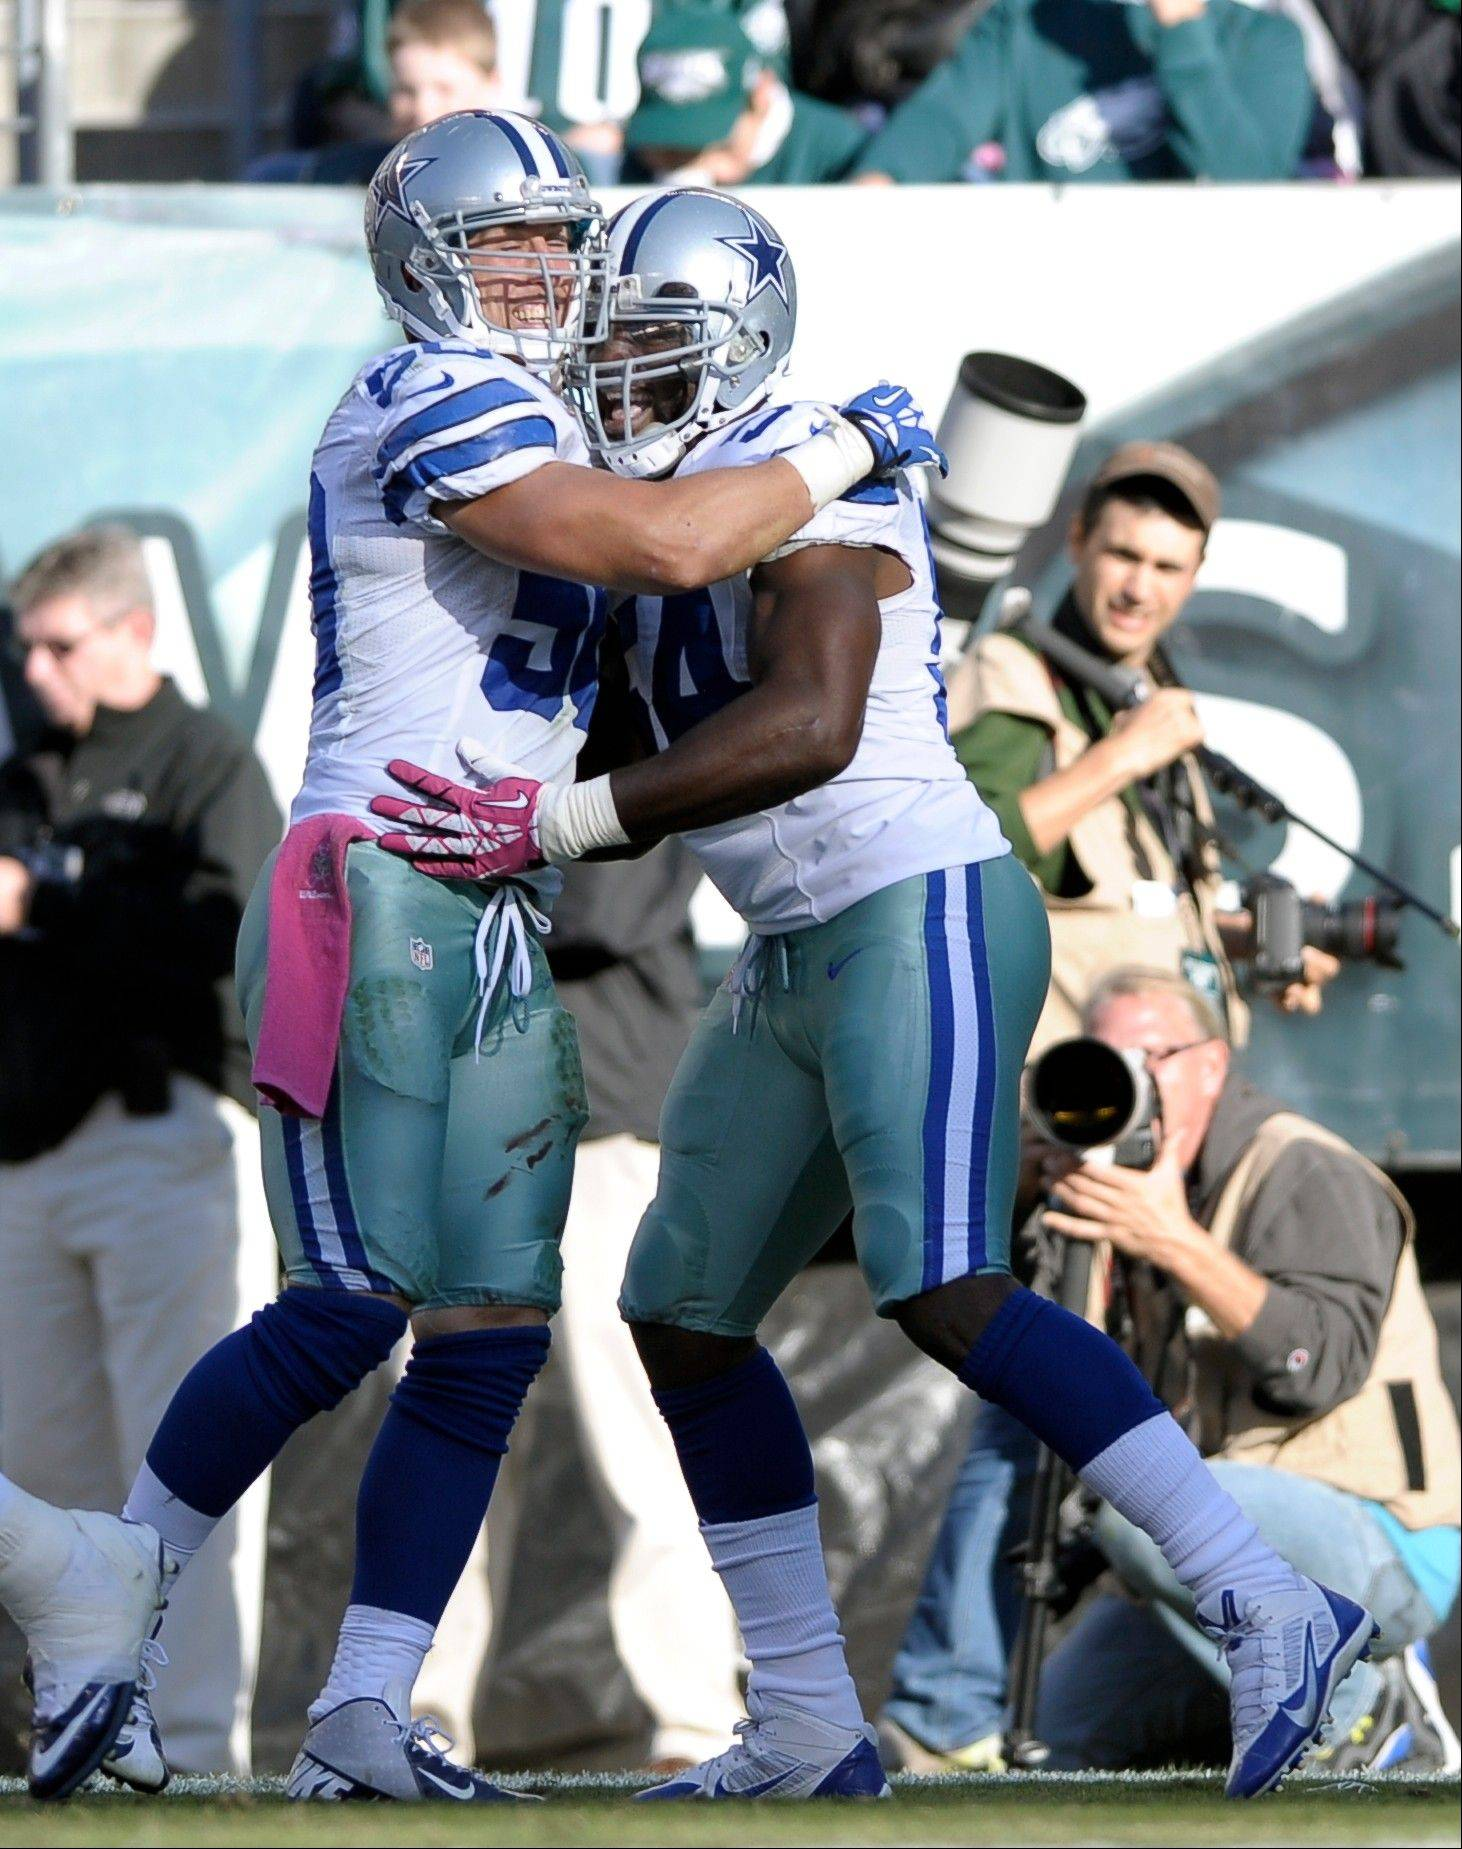 Dallas Cowboys outside linebacker Bruce Carter, right, celebrates with middle linebacker Sean Lee, left, after Carter intercepted a pass from Philadelphia Eagles quarterback Matt Barkley during the second half of an NFL football game, Sunday, Oct. 20, 2013, in Philadelphia.